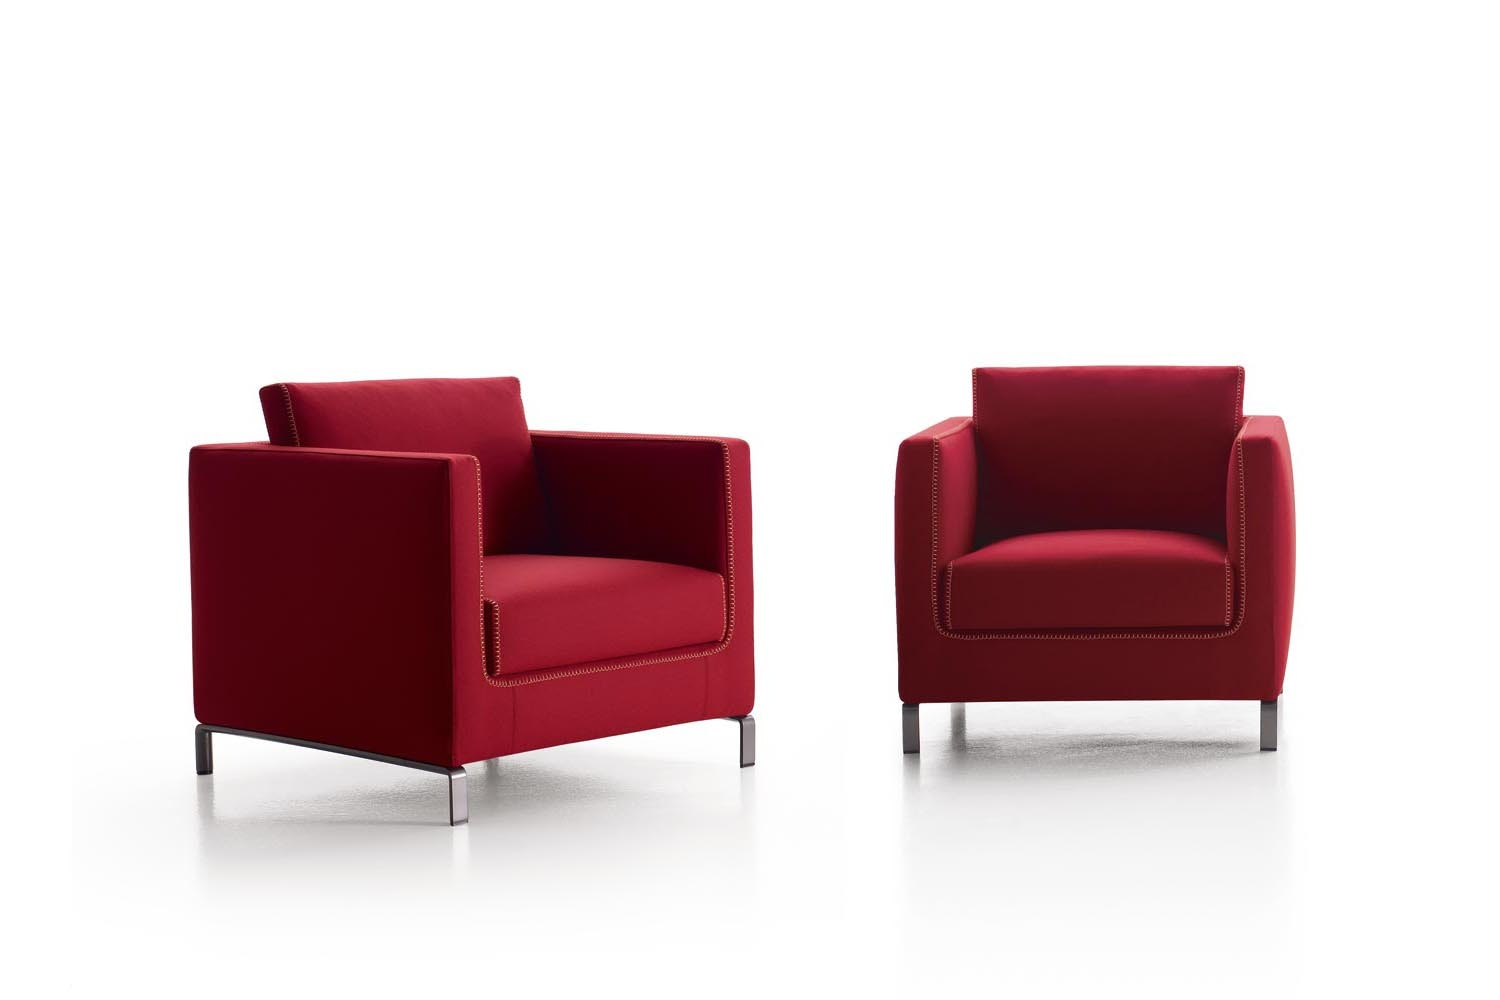 Ray Armchair by Antonio Citterio for B&B Italia